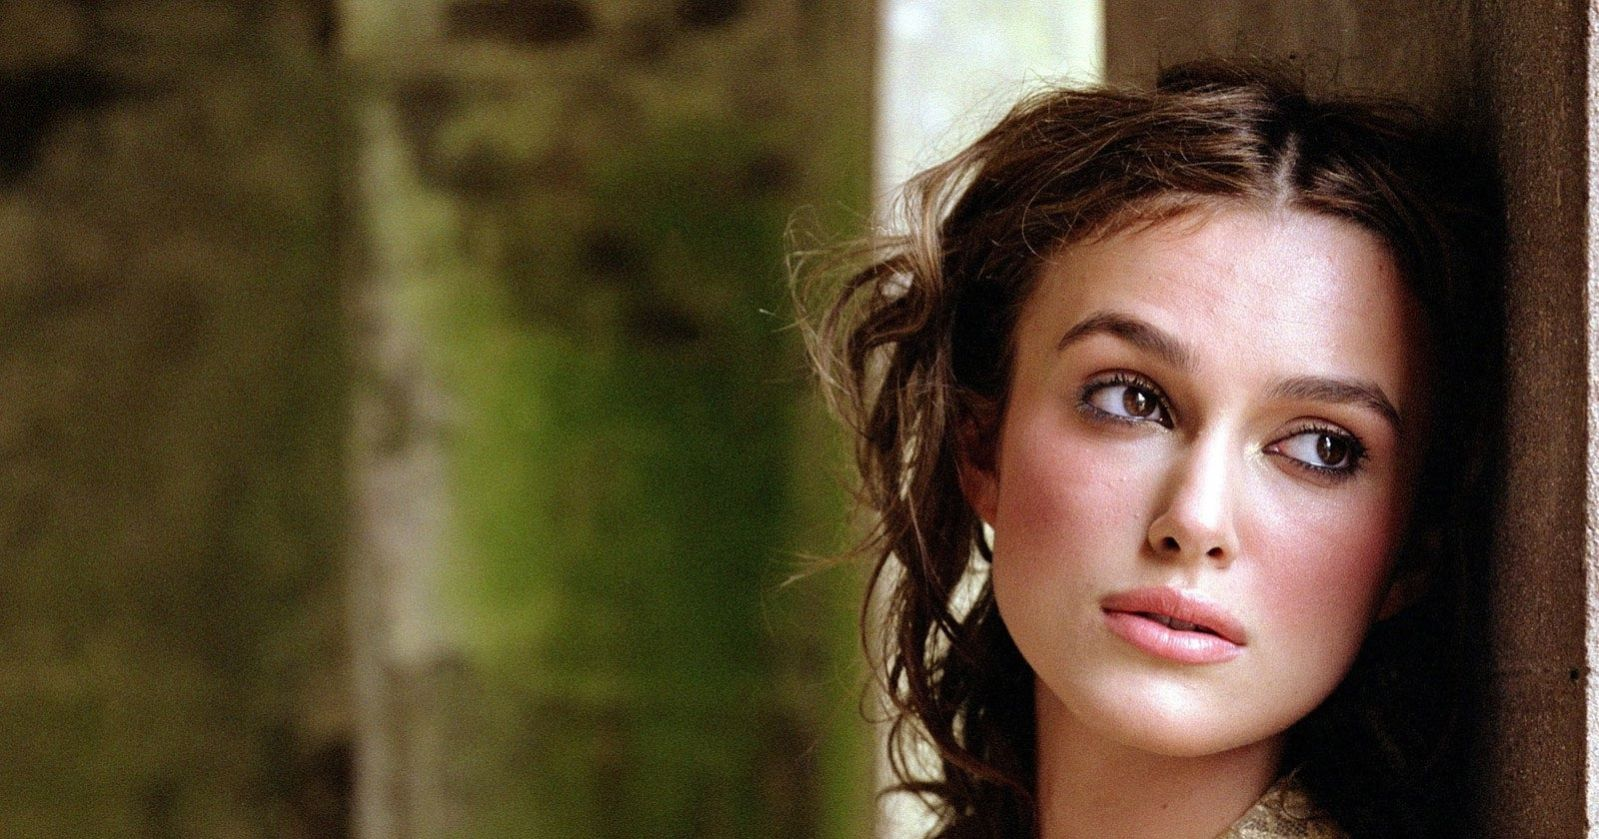 keira-knightley-free-hd-wallpaper-golden